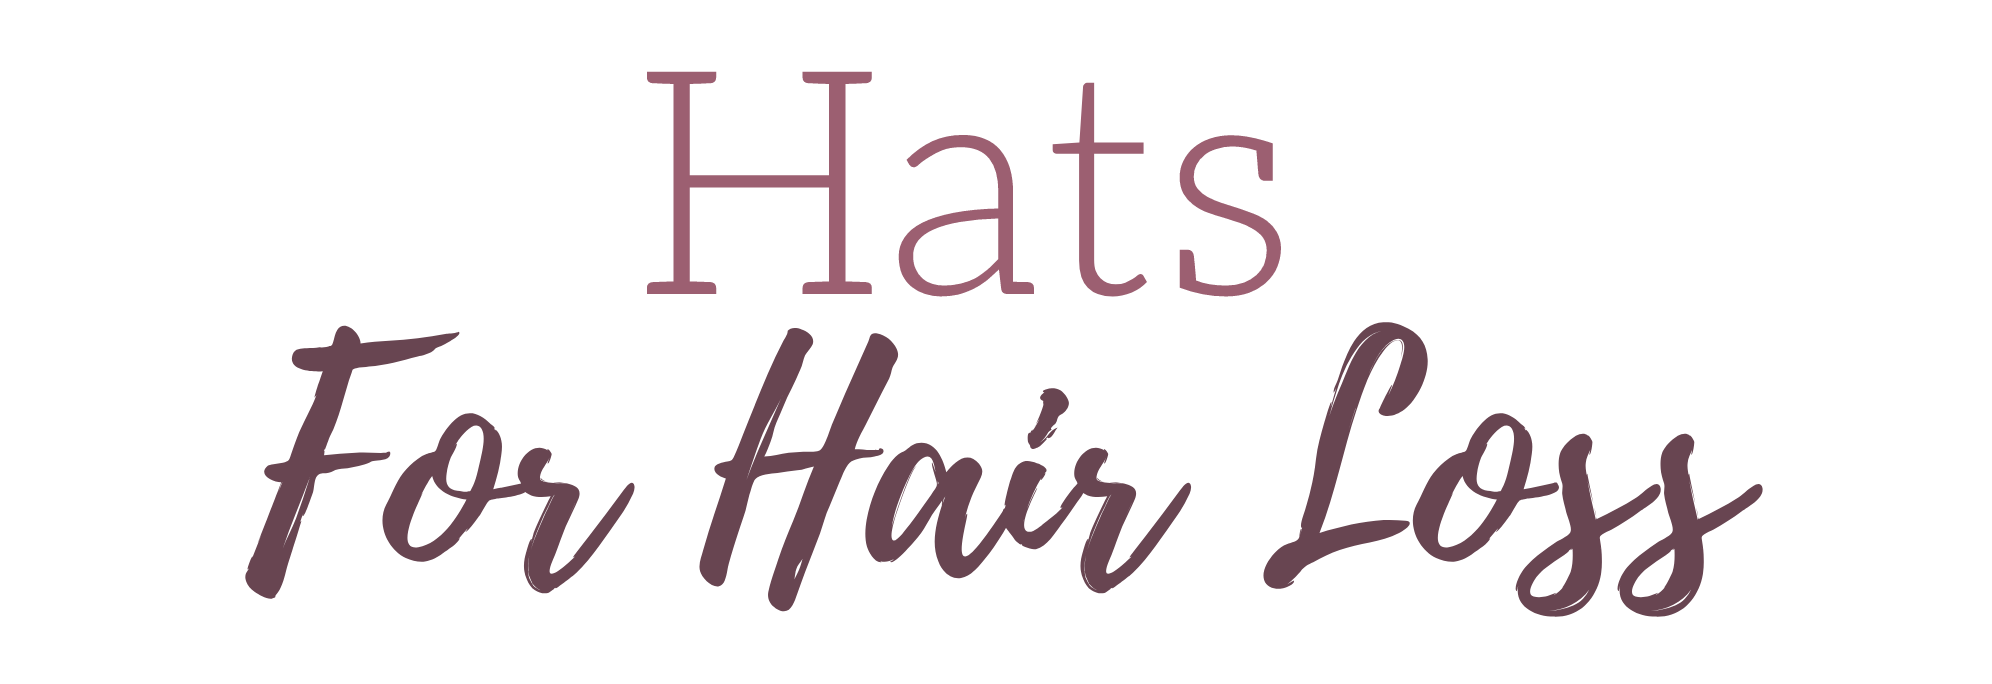 Hats for hair loss